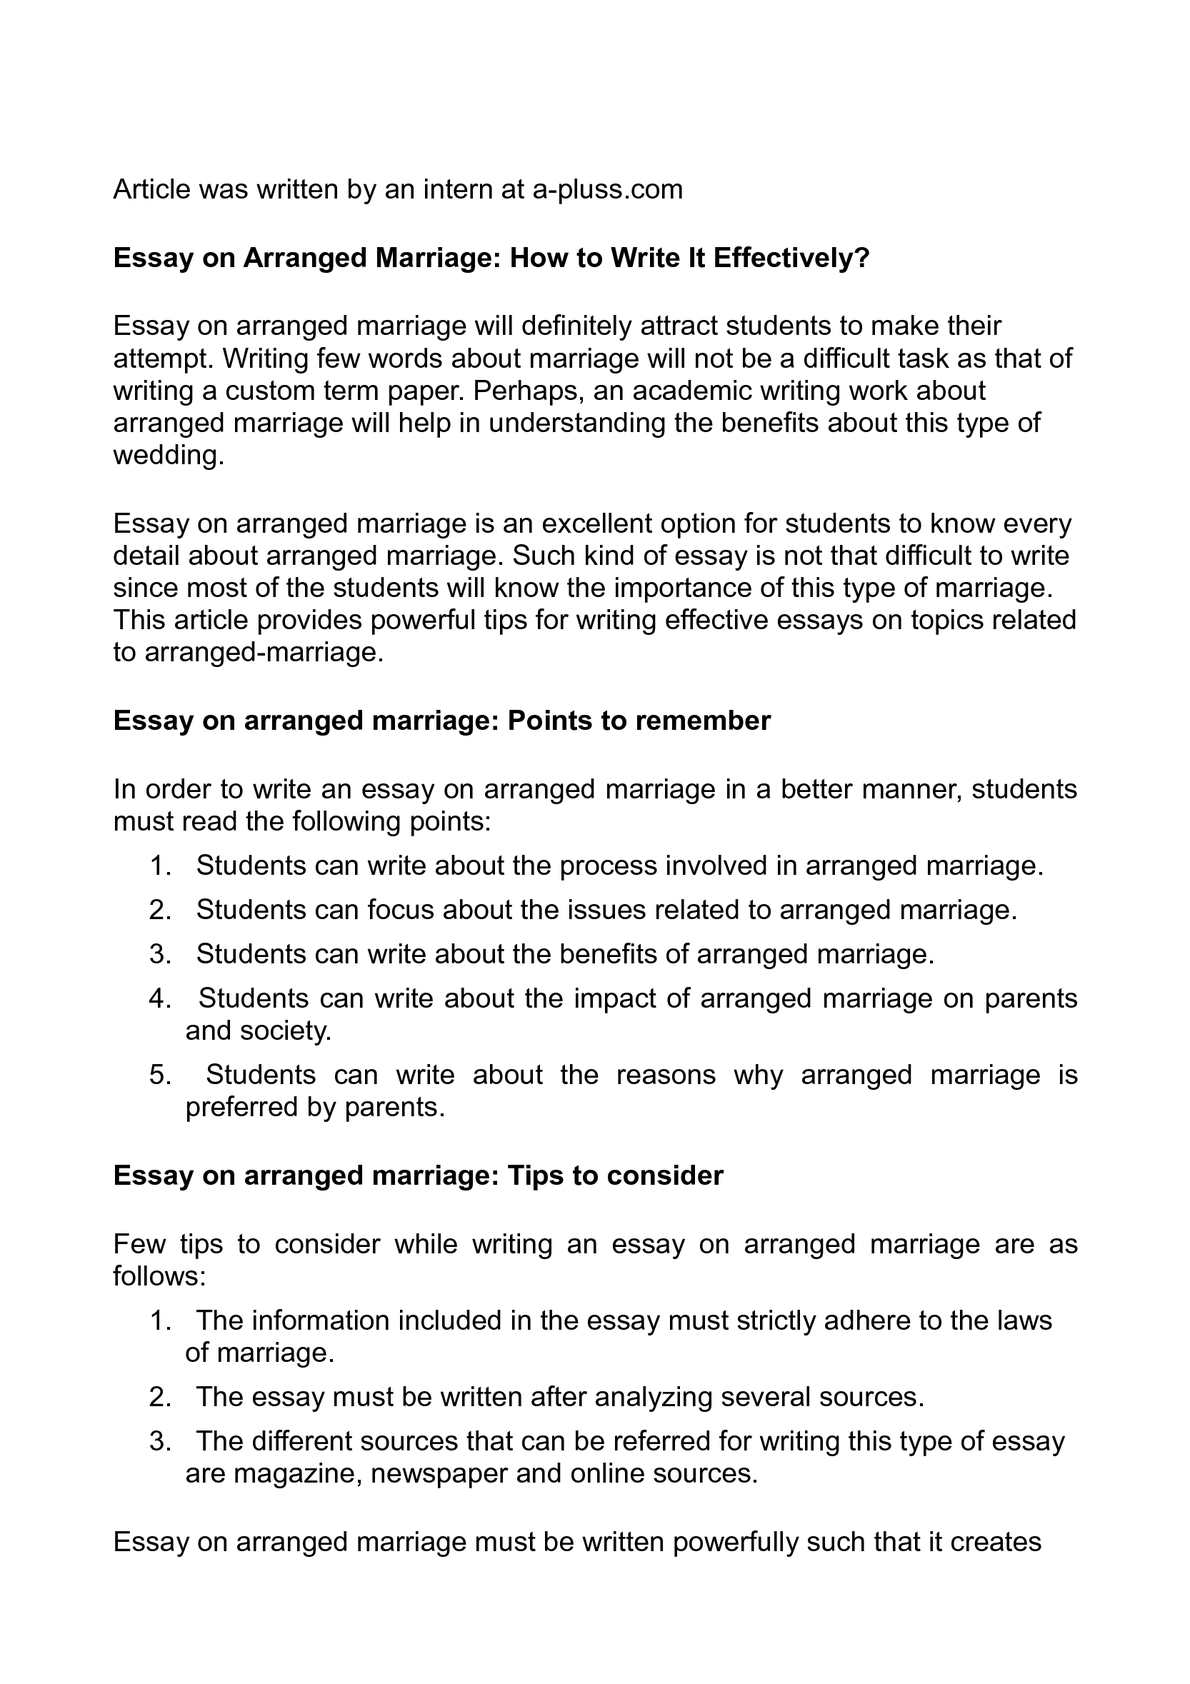 High School Years Essay  Short Essays In English also Best Essay Topics For High School Calamo  Essay On Arranged Marriage How To Write It Effectively Example Proposal Essay